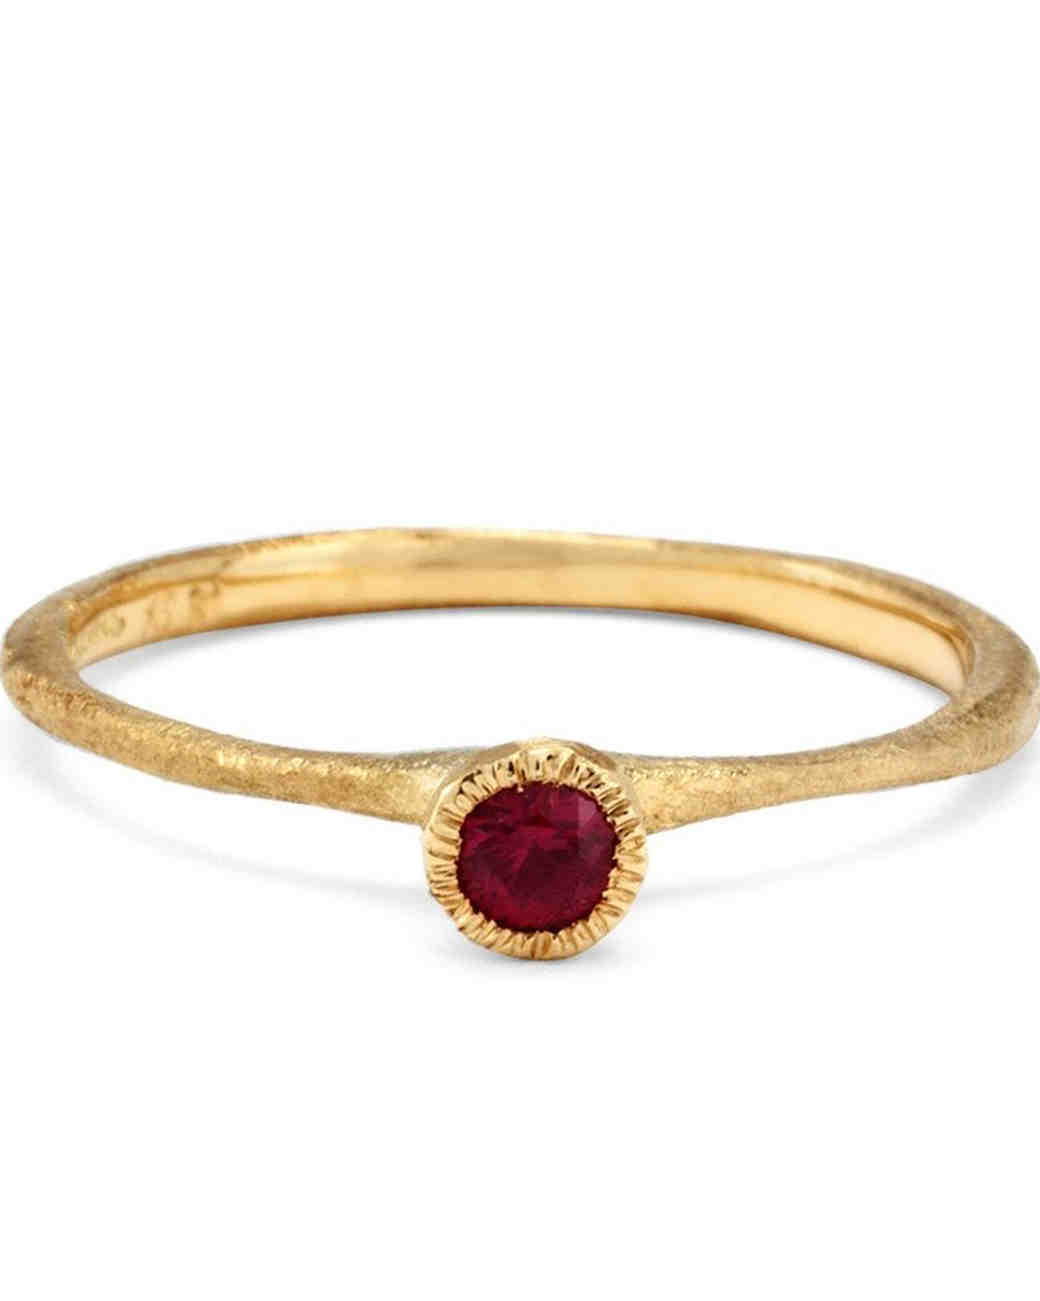 Satomi Kawakita Solitaire Ruby Engagement Ring with matte finish